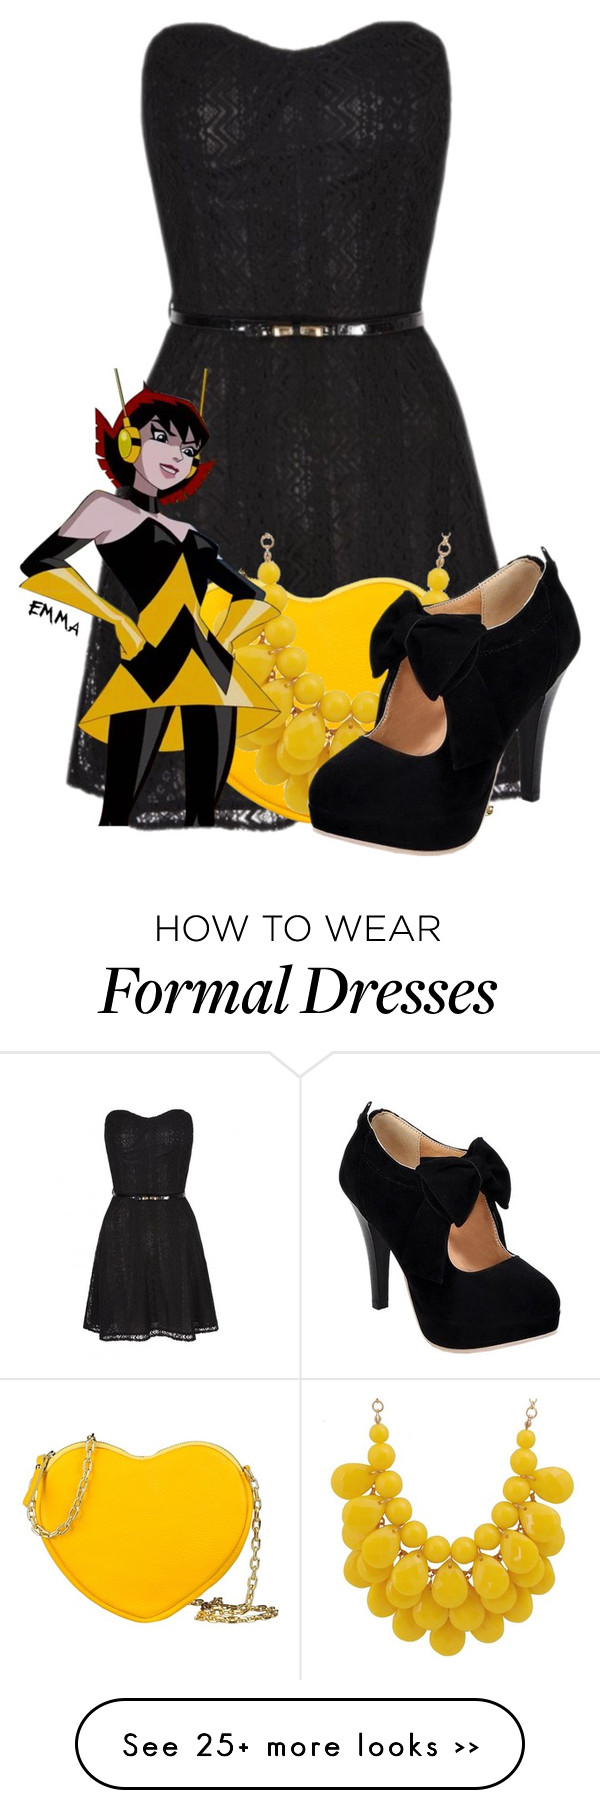 Wasp inspired formal